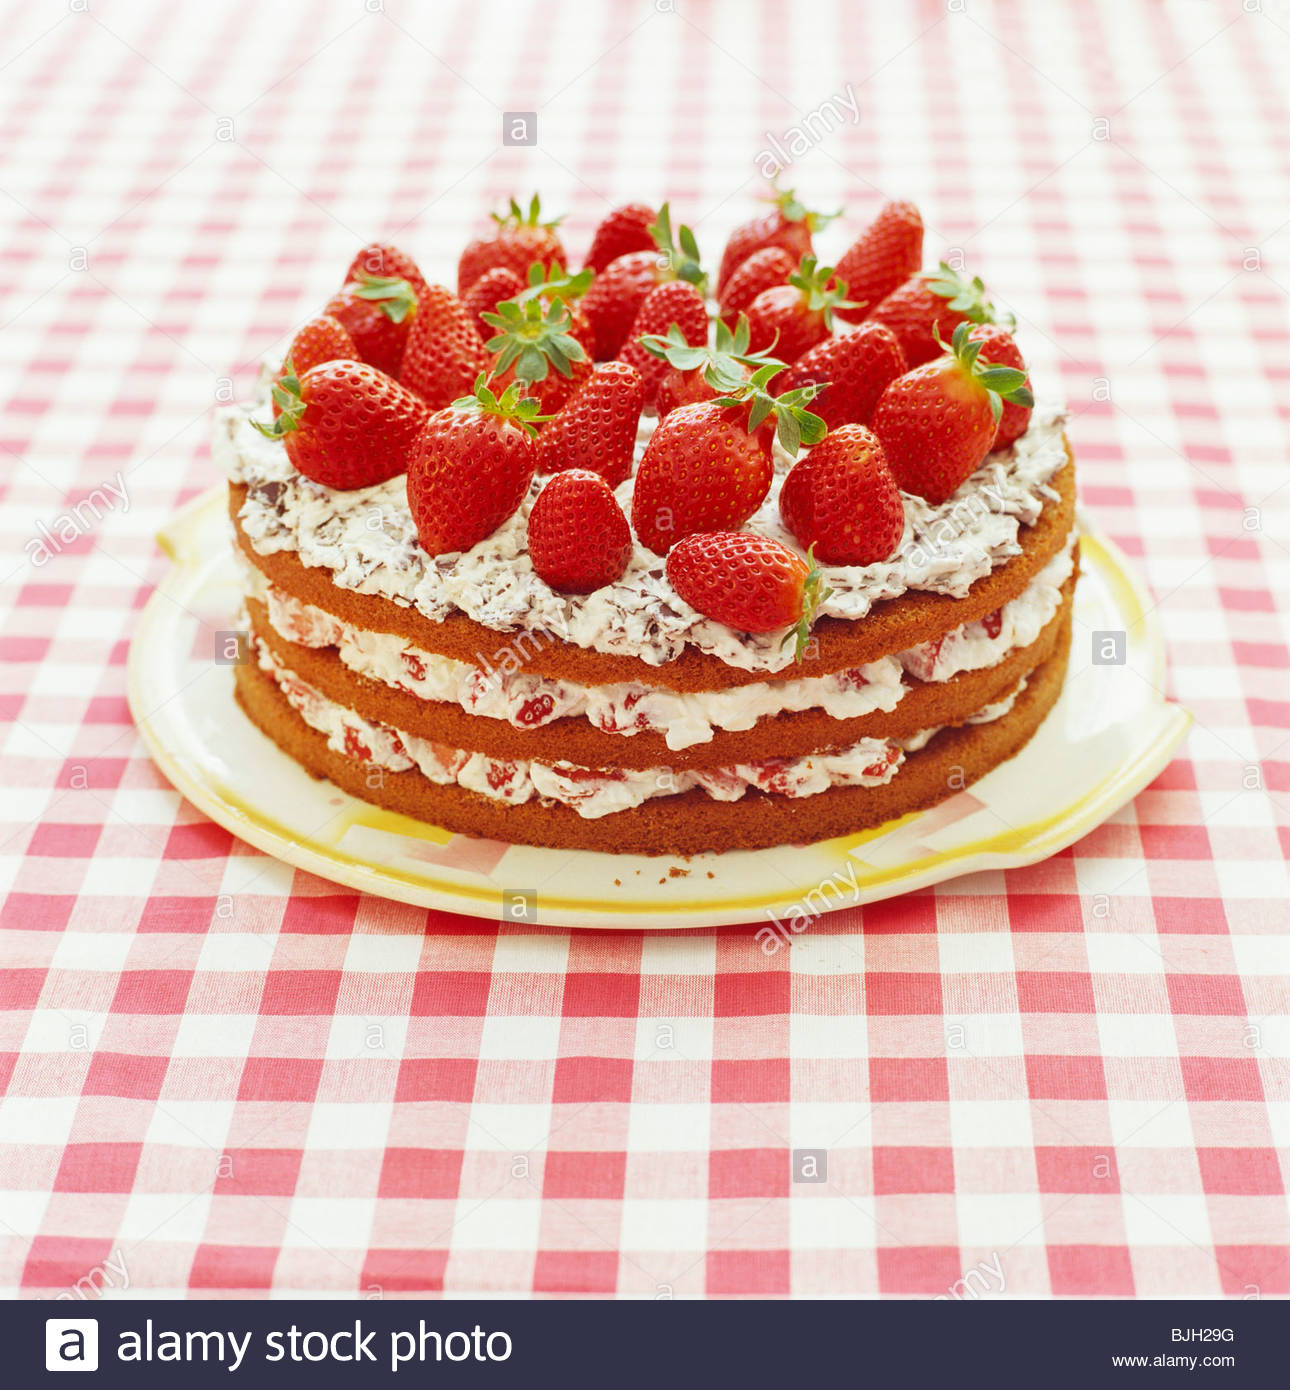 Stock Photo Strawberry Gateau With Chocolate Sponge And Fresh Strawberries